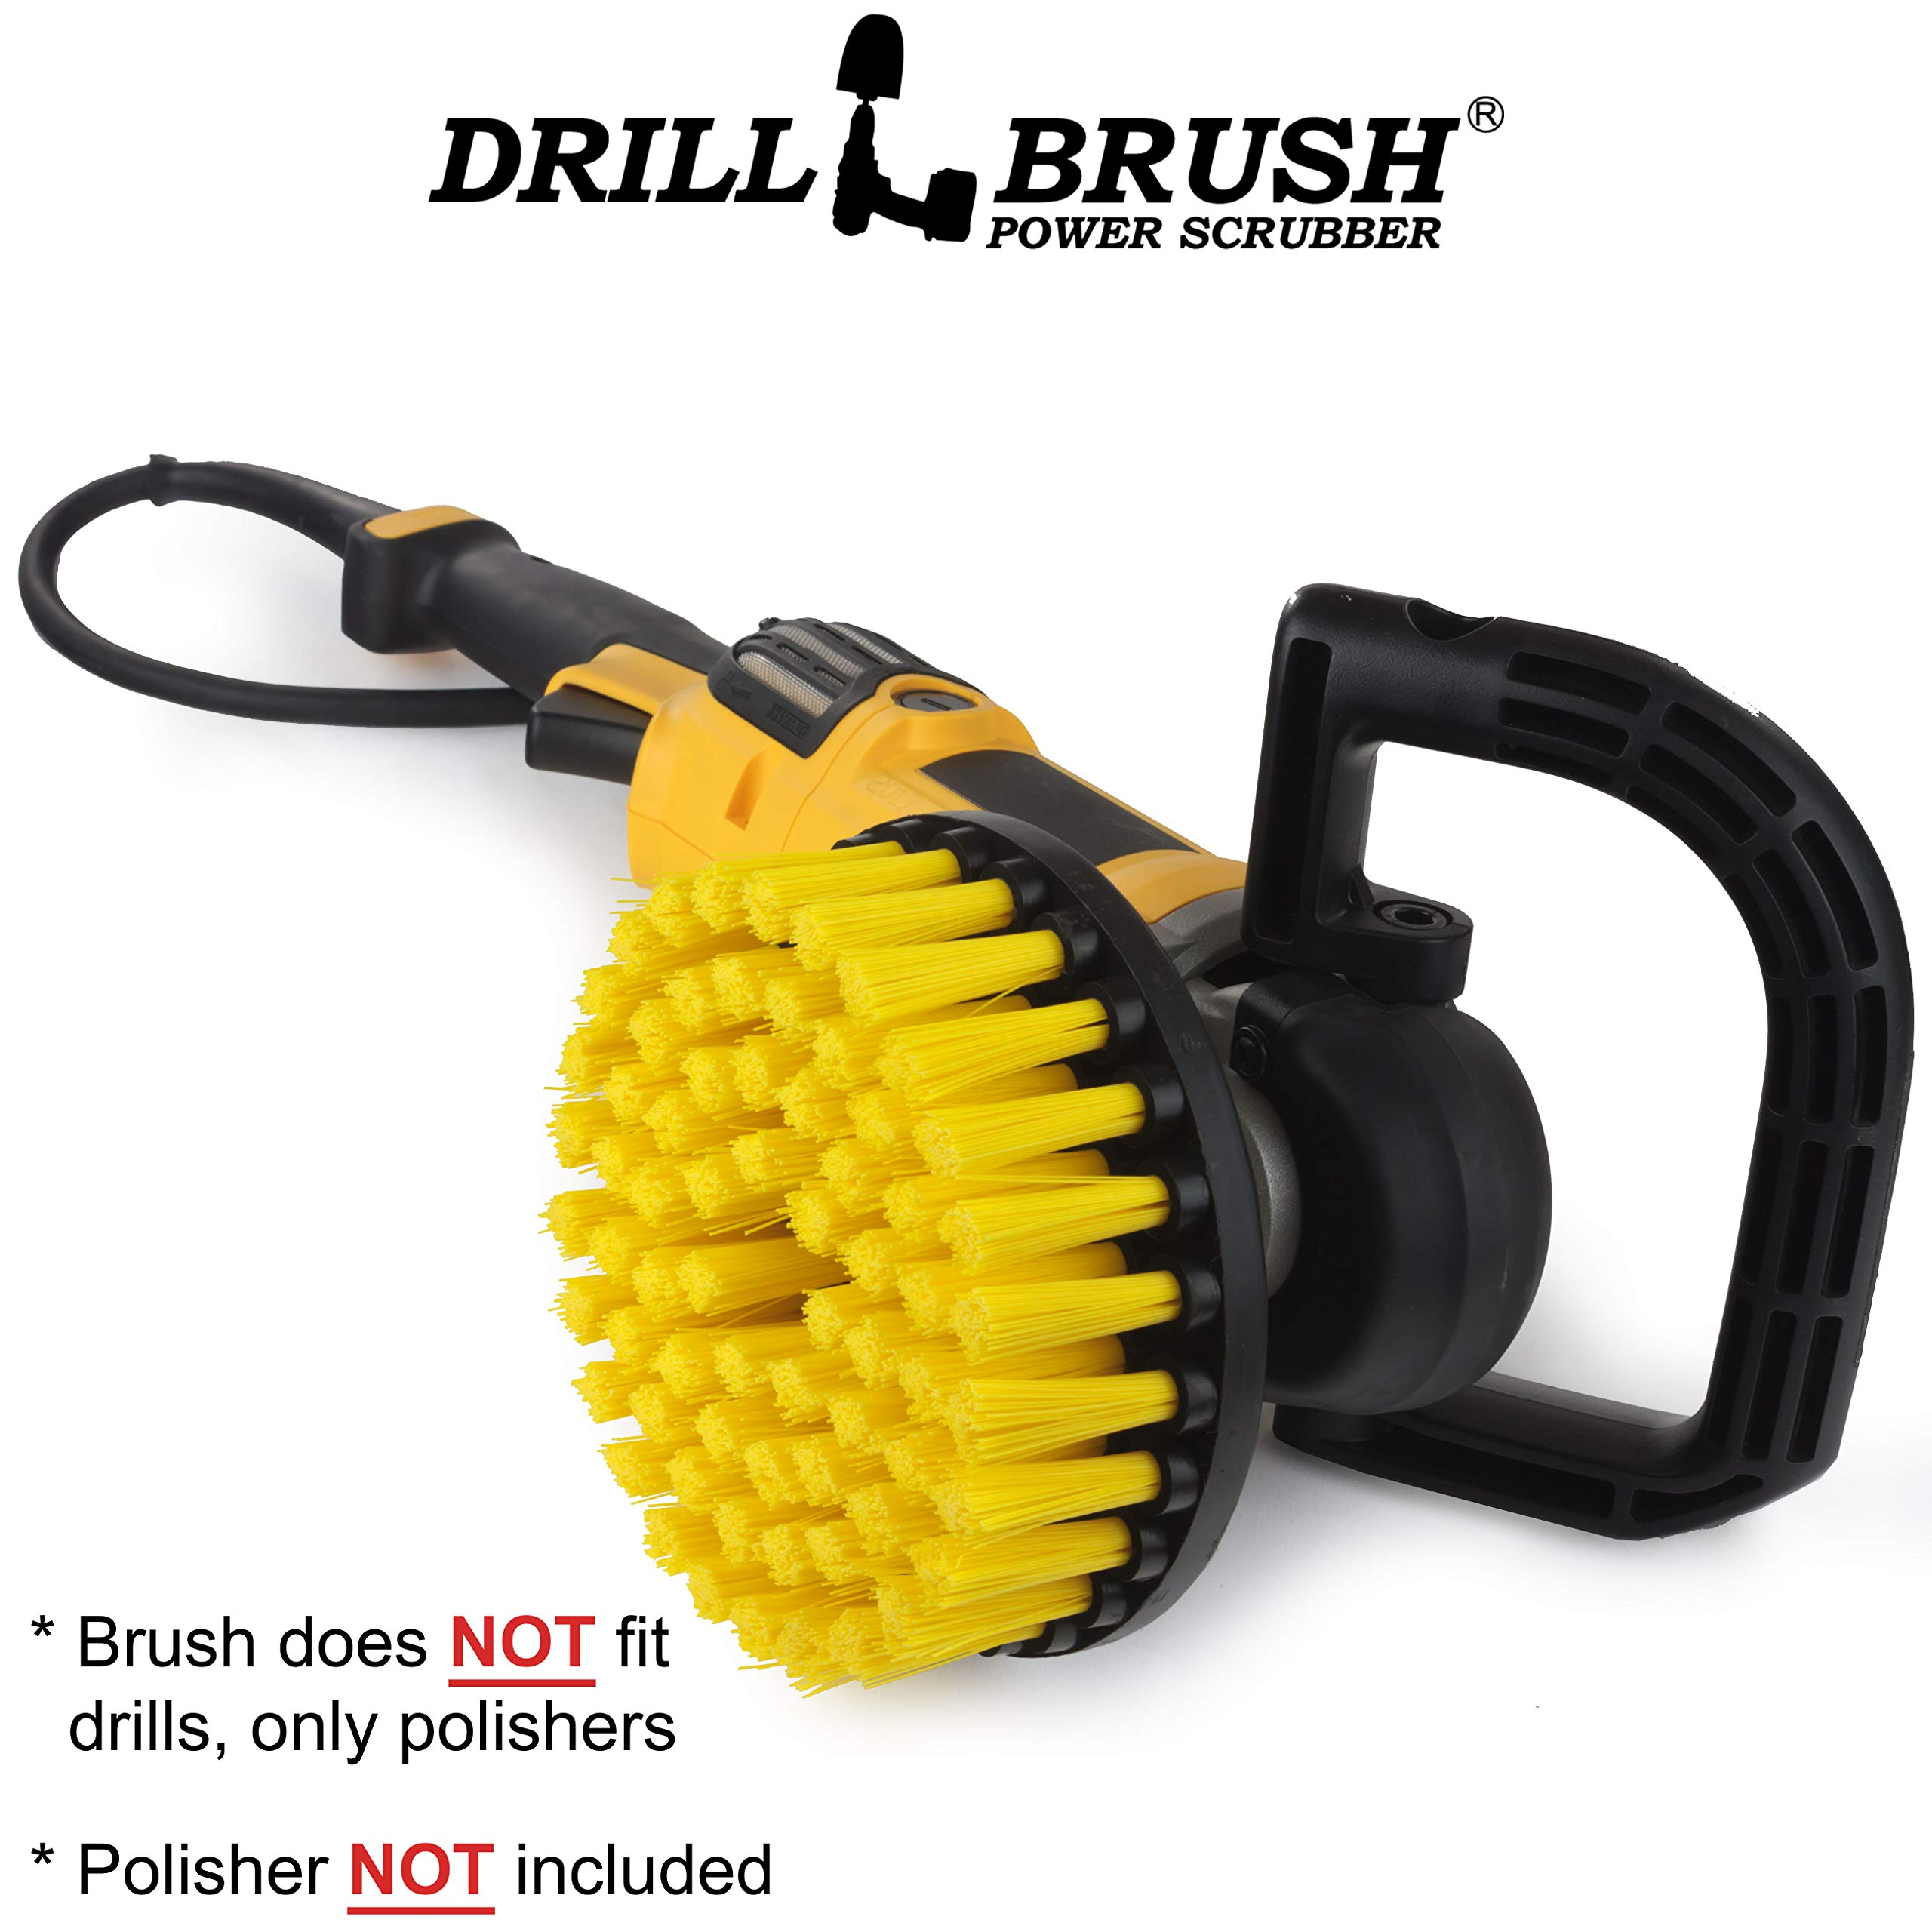 Bathroom Accessories - Cleaning Supplies - Scrub Brush - 7in - Medium Yellow Bristles - Variable Speed Polisher - 5/8 x 11 Threaded Hub - Tile - Shower Cleaner - Porcelain - Flooring